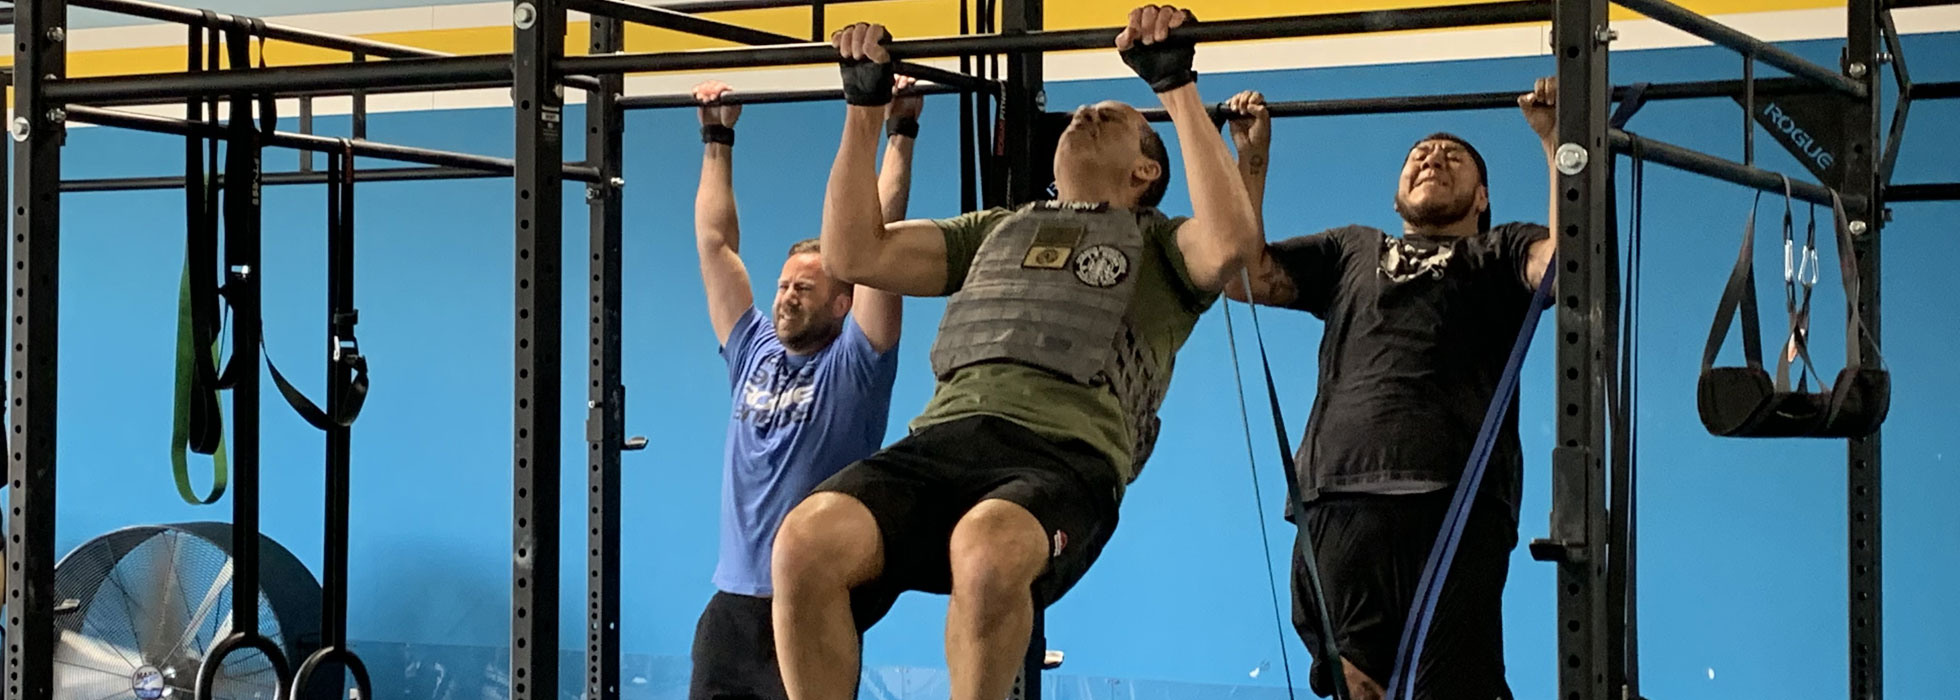 Top 5 Best Gyms To Join Near Me In Commerce City, Colorado